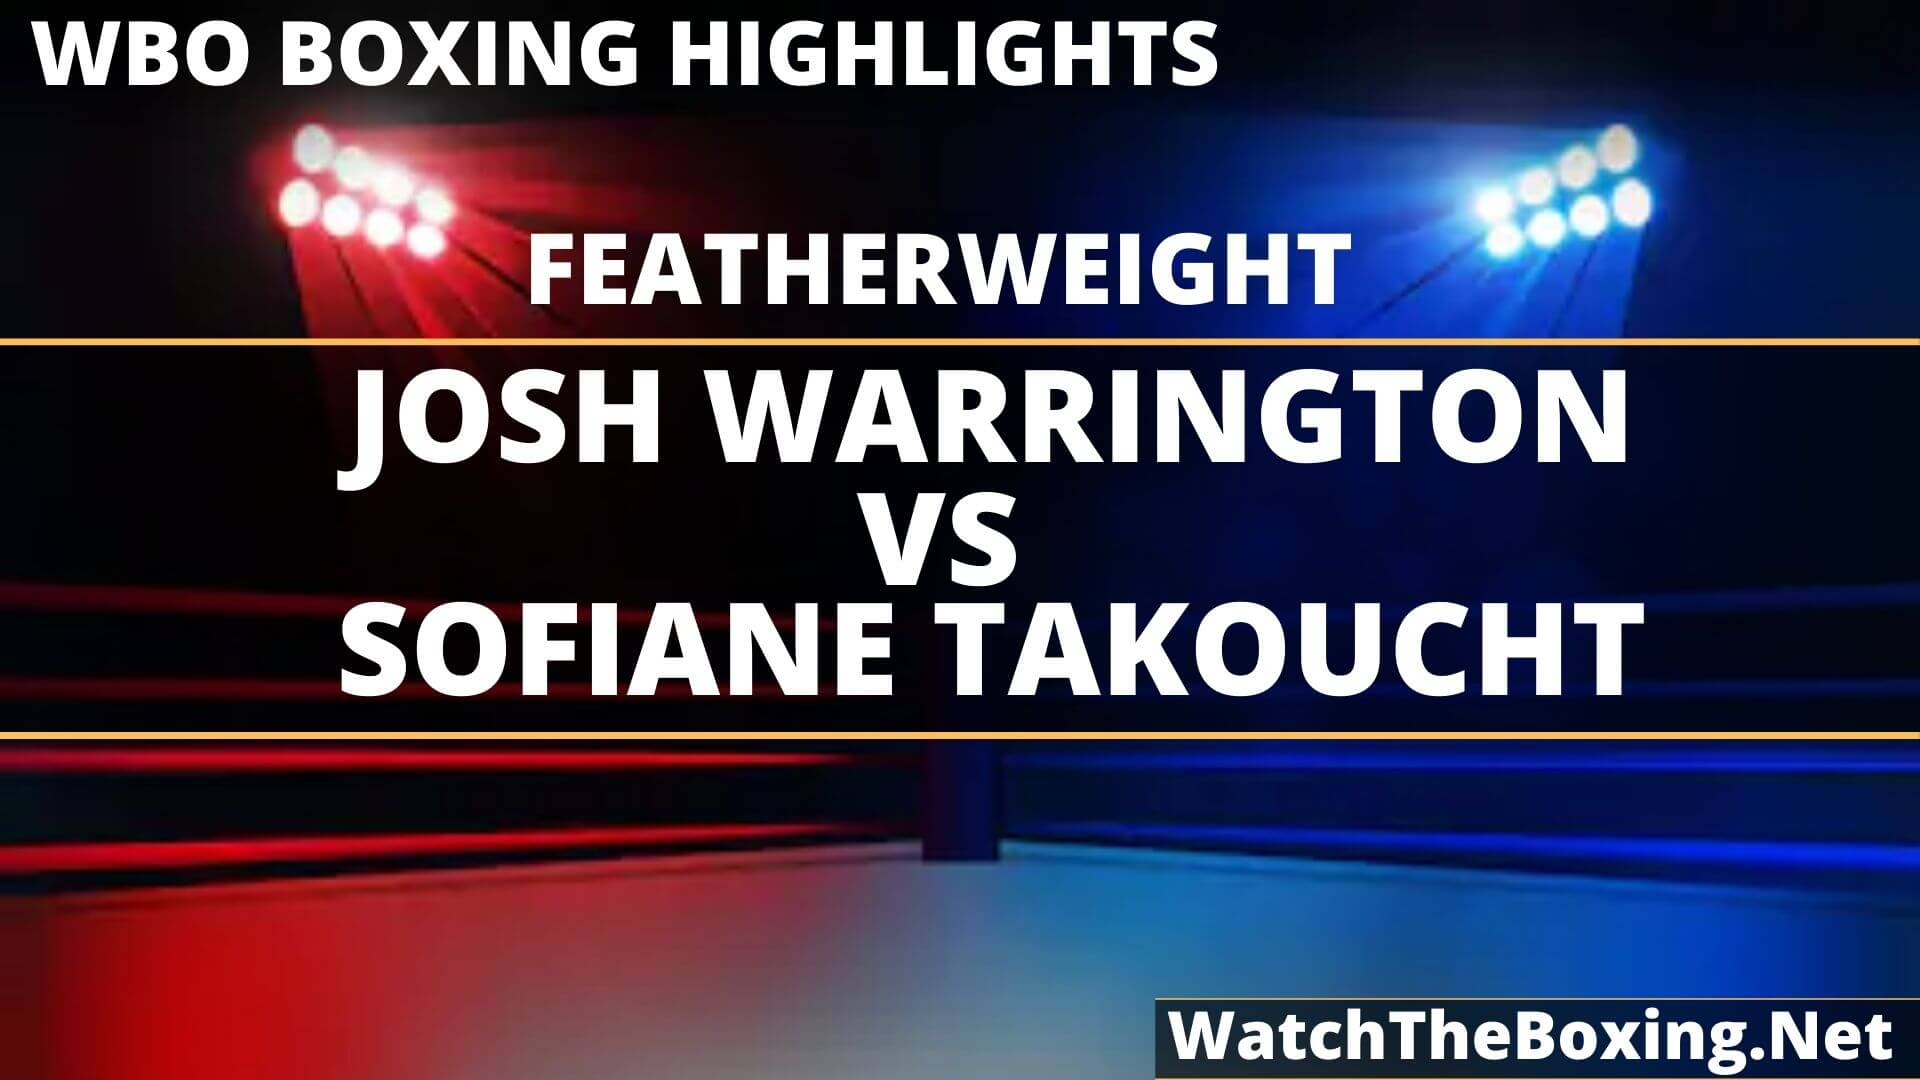 Josh Warrington Vs Sofiane Takoucht Highlights 2019